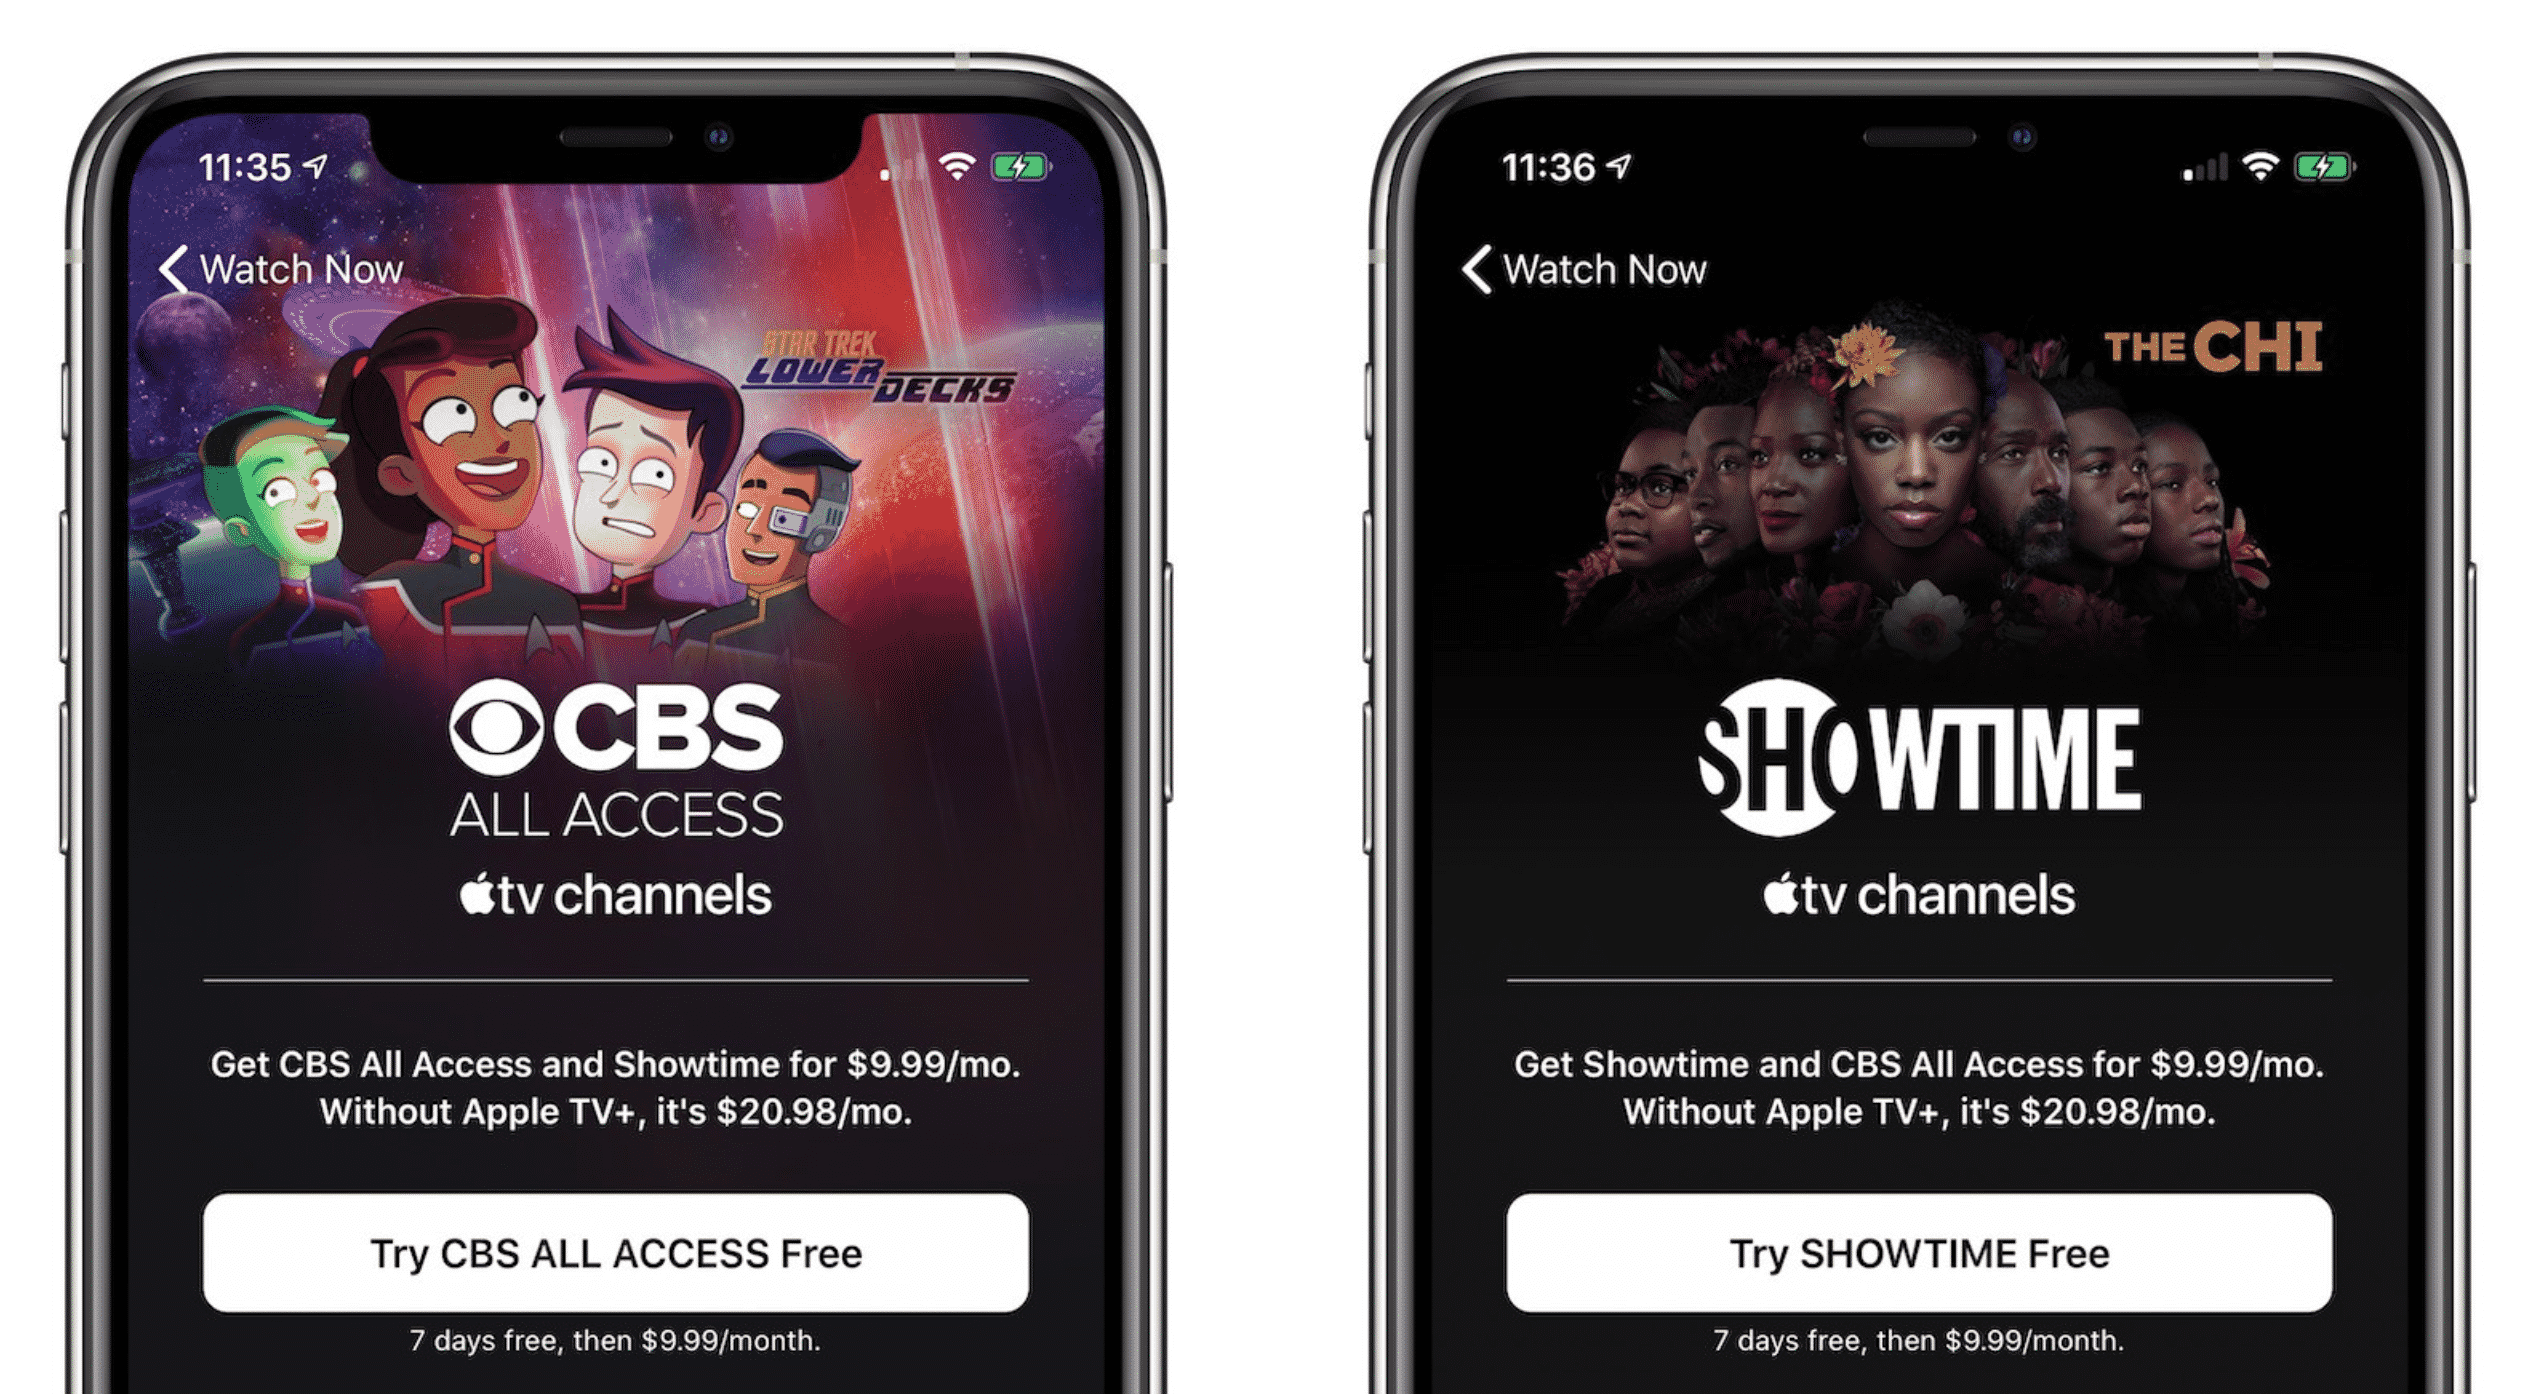 Apple TV+ subscribers can get Showtime and CBS bundle at 50% off